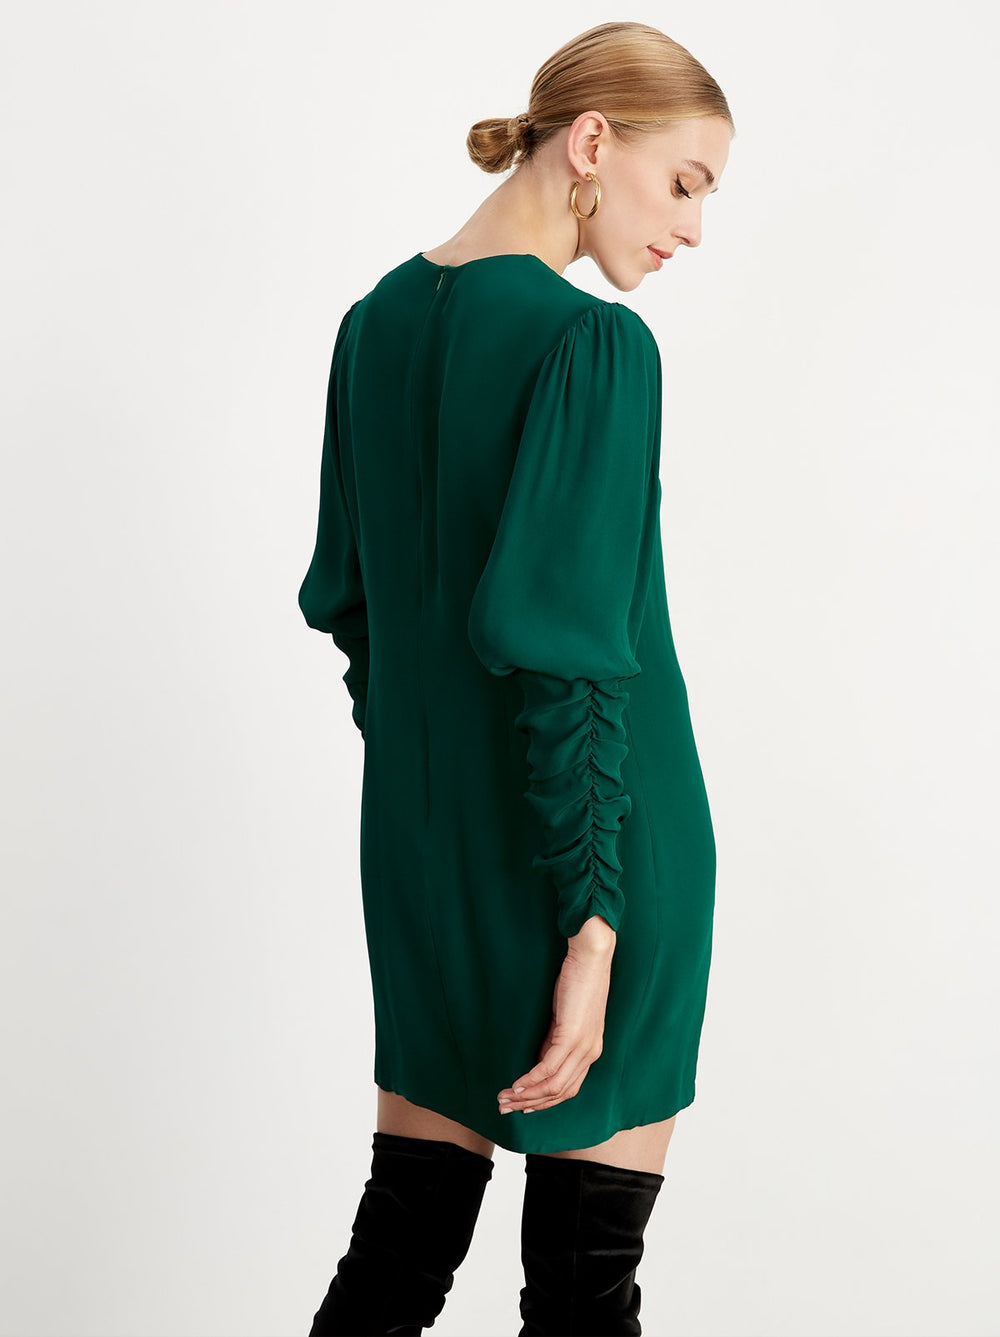 Alexandra Green Mini Dress by KITRI Studio